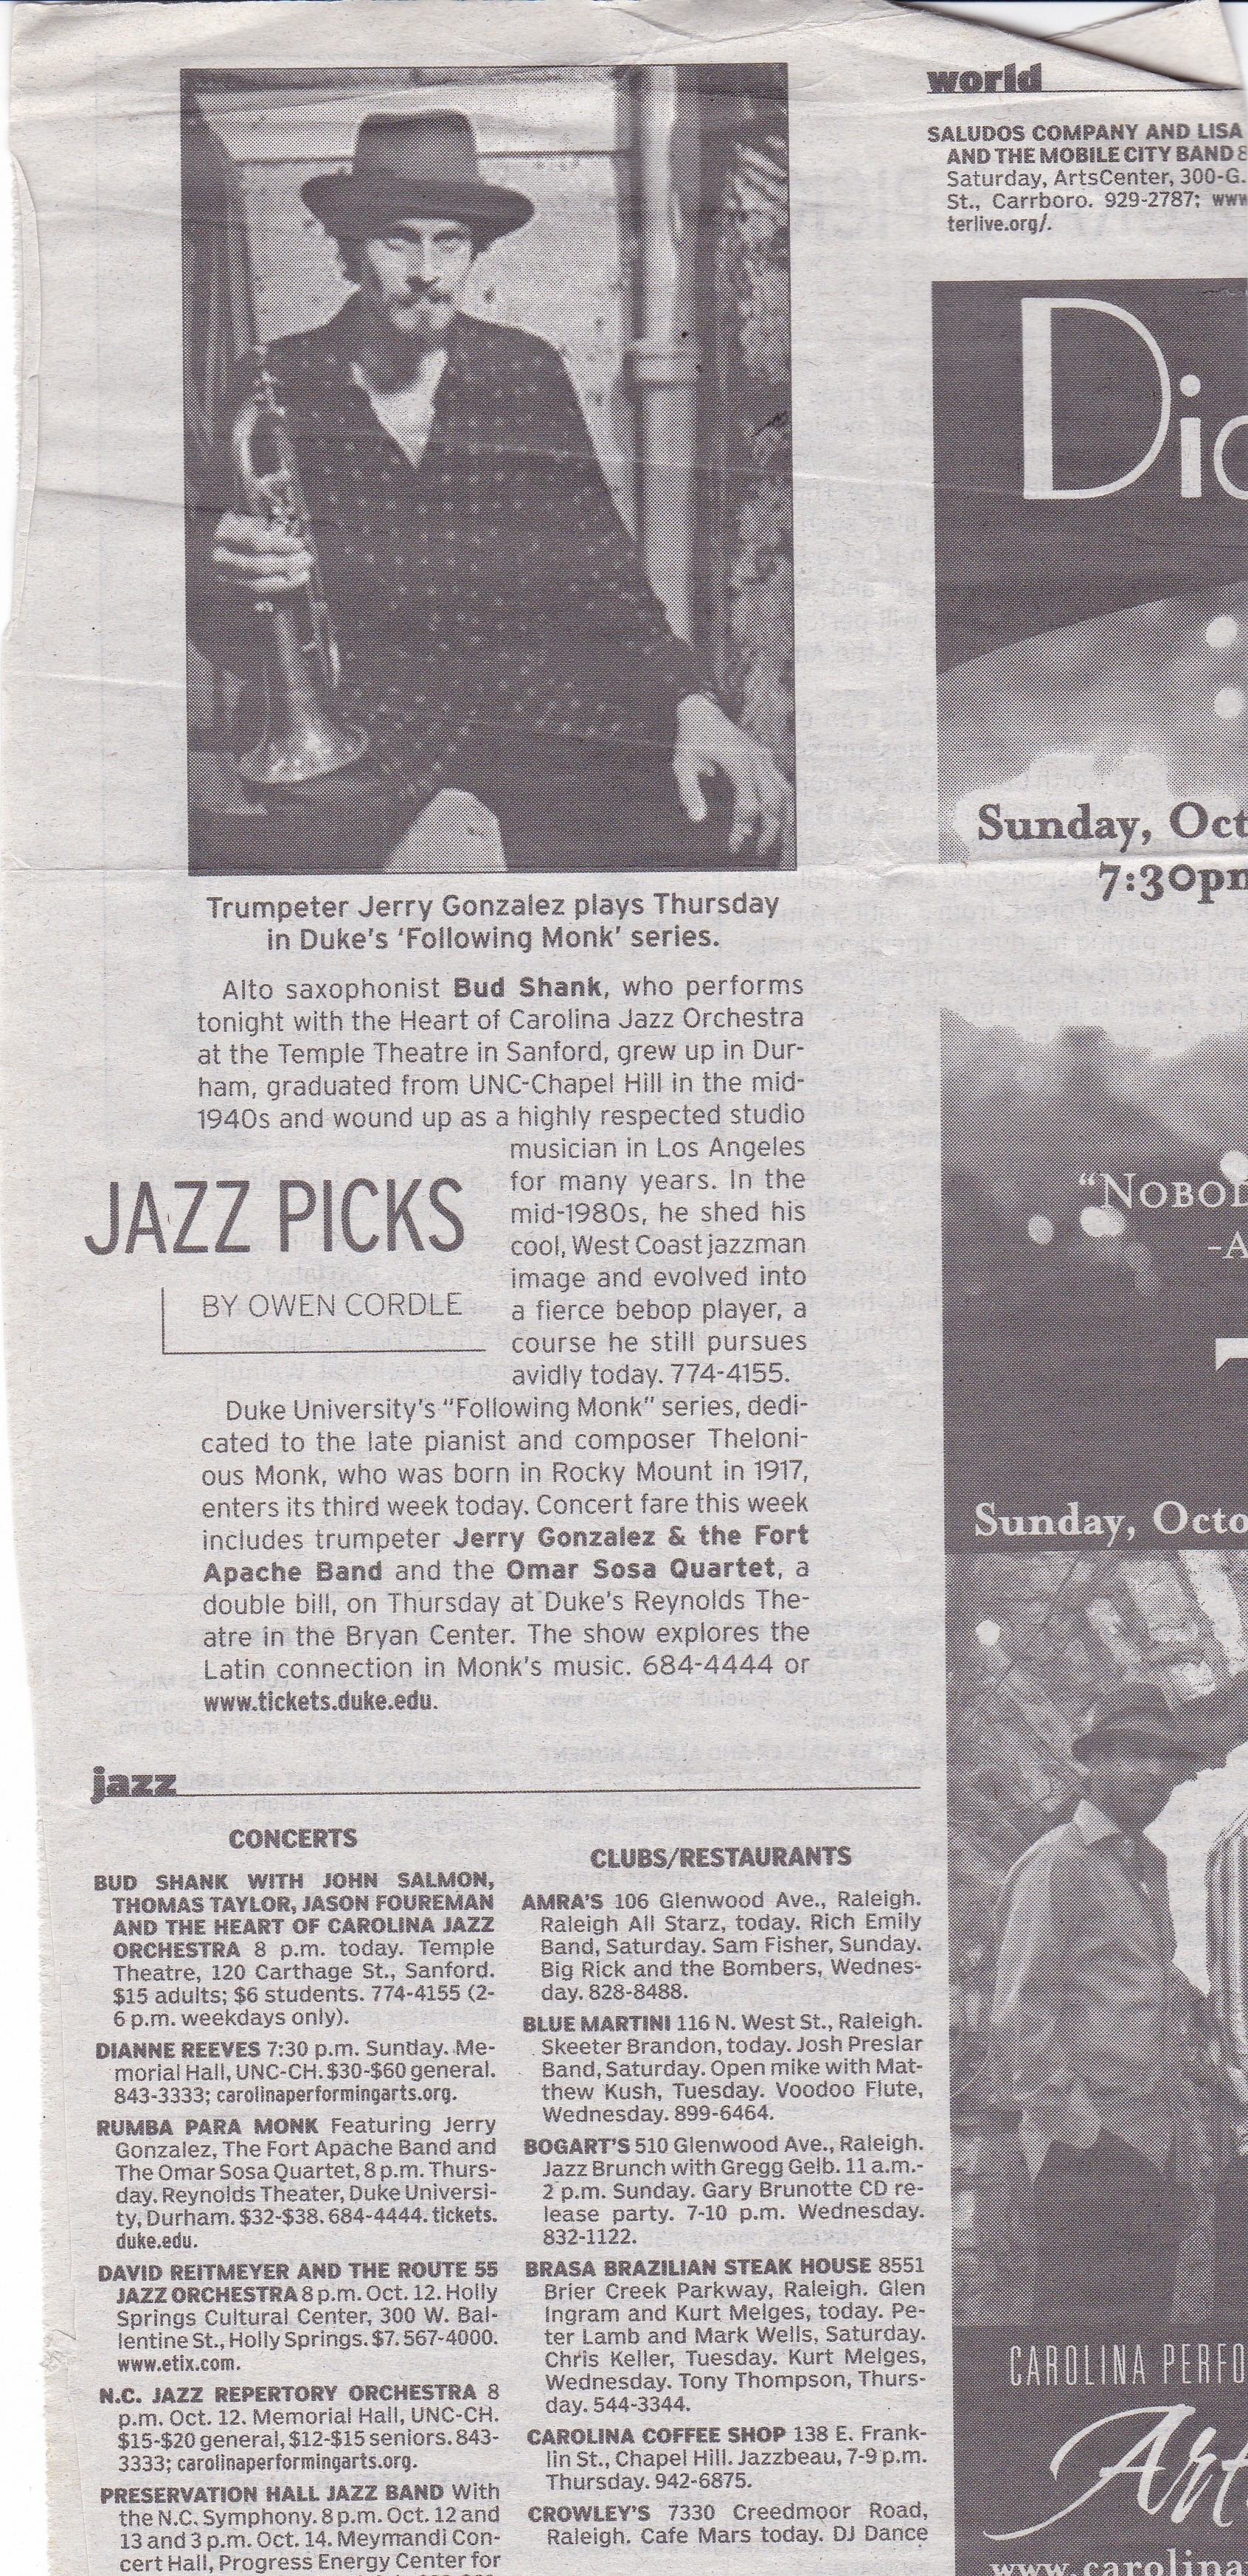 HOCJO-Guest-Artist-Bud-Shank-jazz-pick-N-and-O